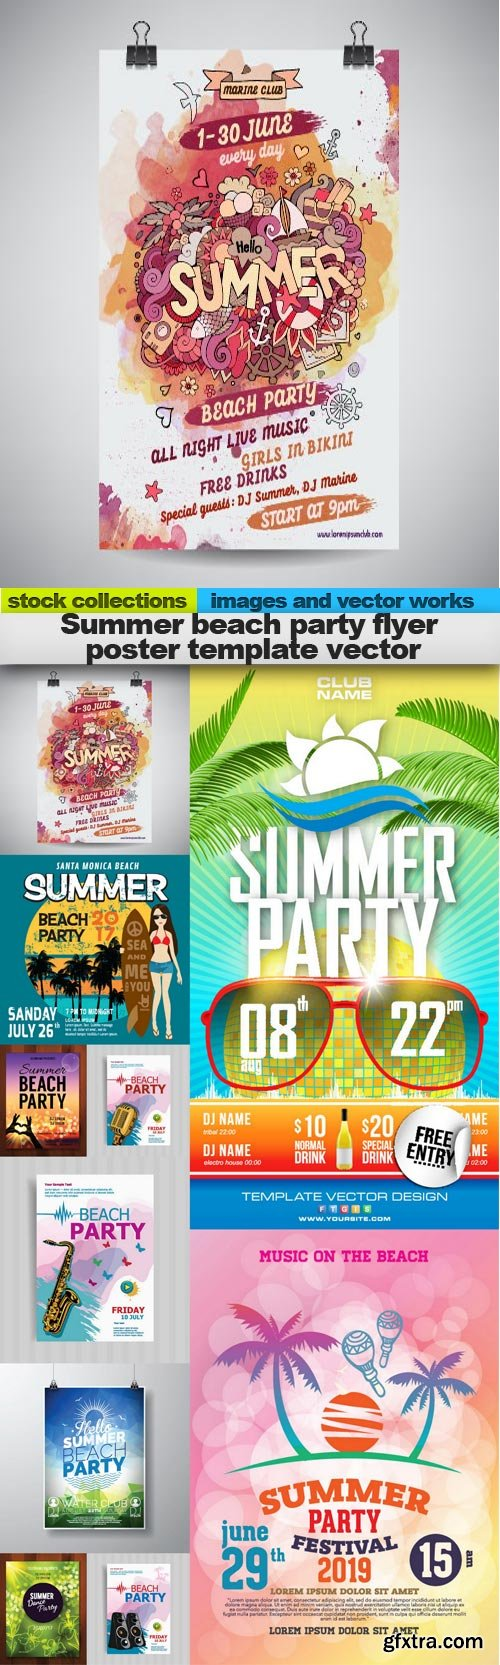 Summer beach party flyer poster template vector, 10 x EPS